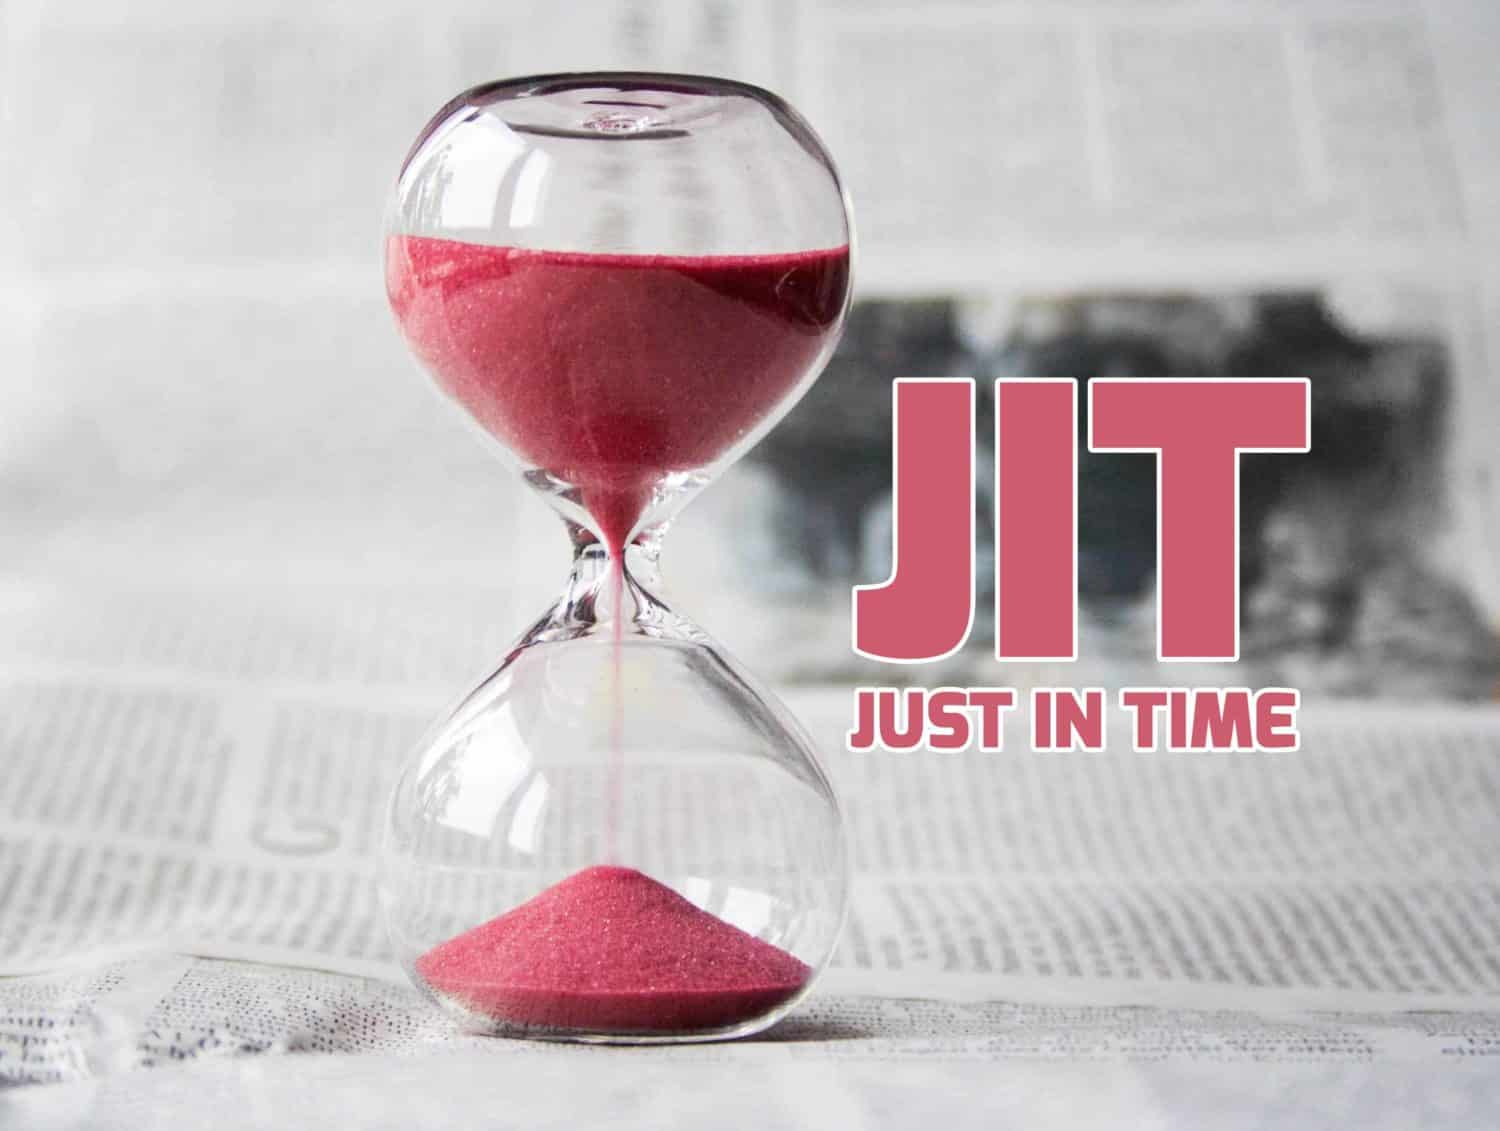 Just in Time (JIT): O que é?